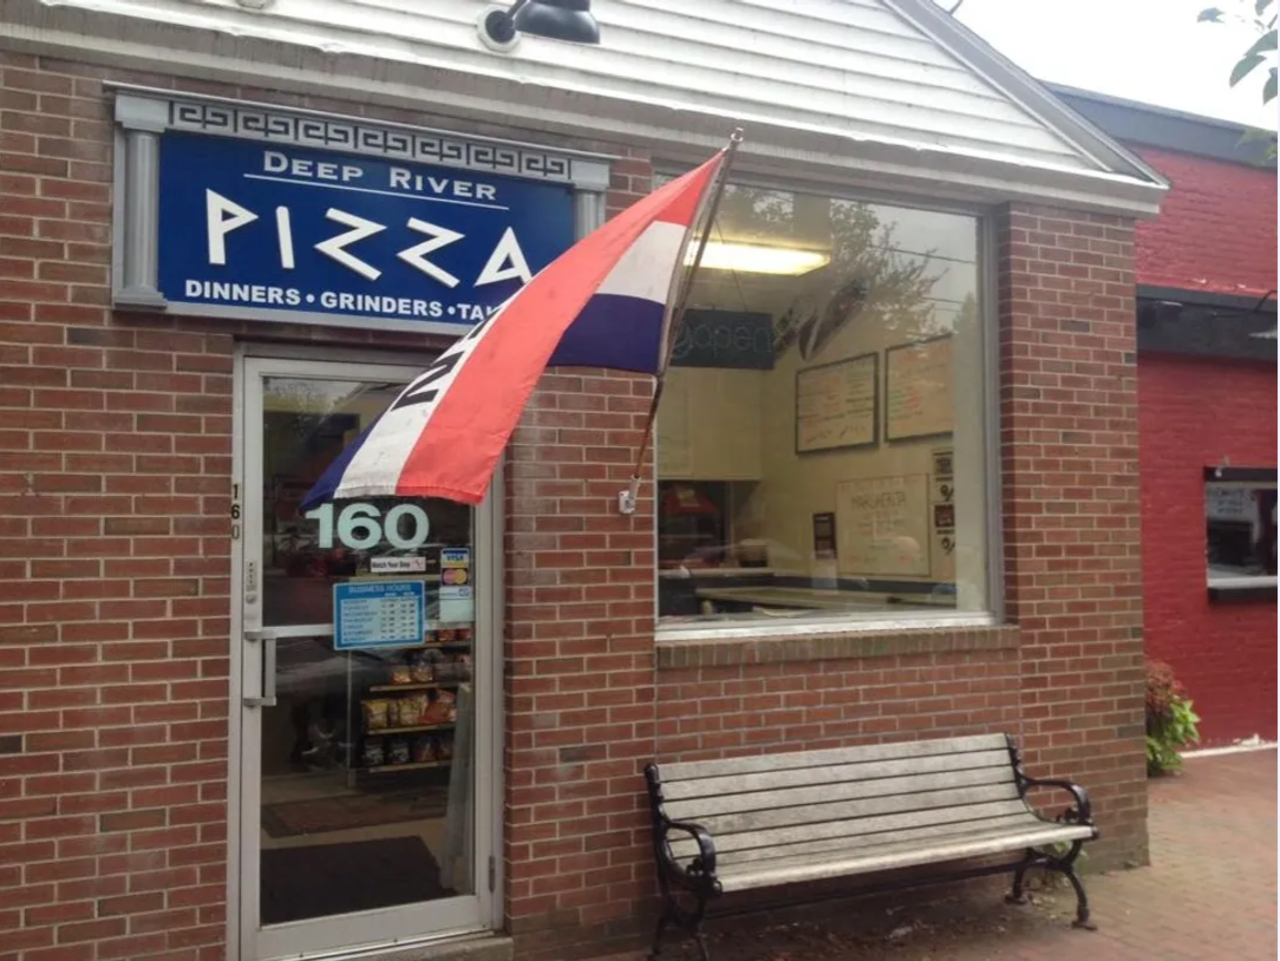 Deep River Pizza - Food and Beverage - Pizza in Deep River CT